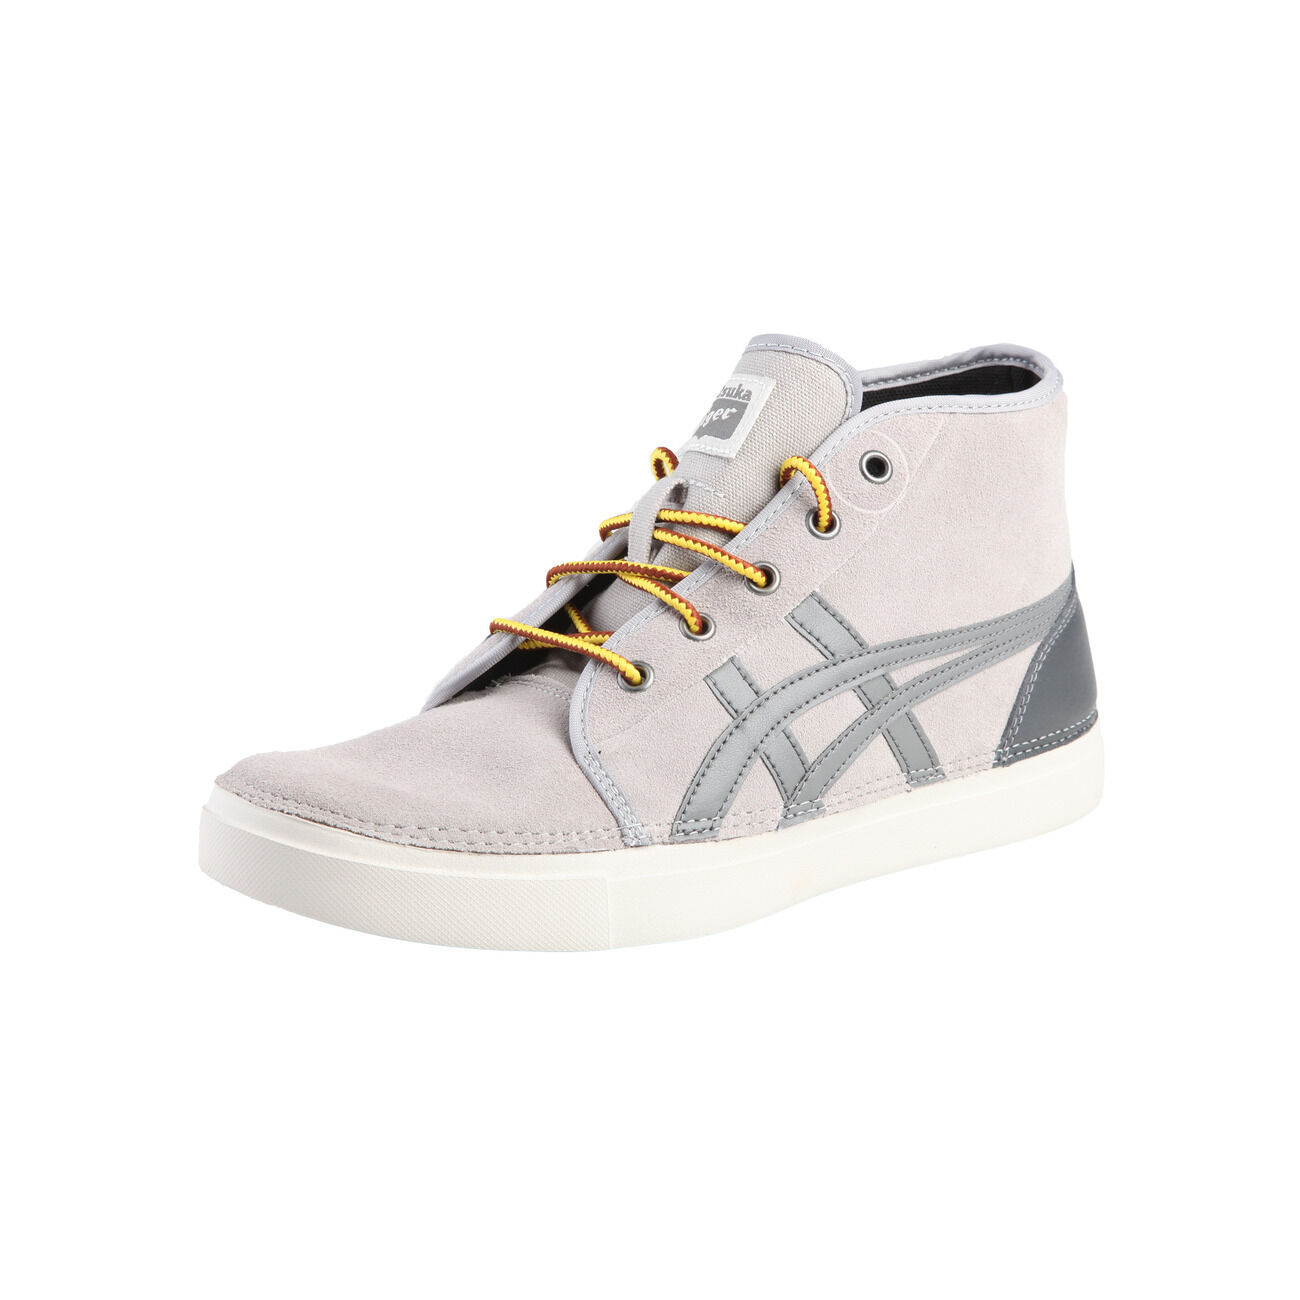 Asics Onitsuka Tiger CLAVERTON Unisex Sneakers, Turnschuhe EU40, 42.5, UK6, 8